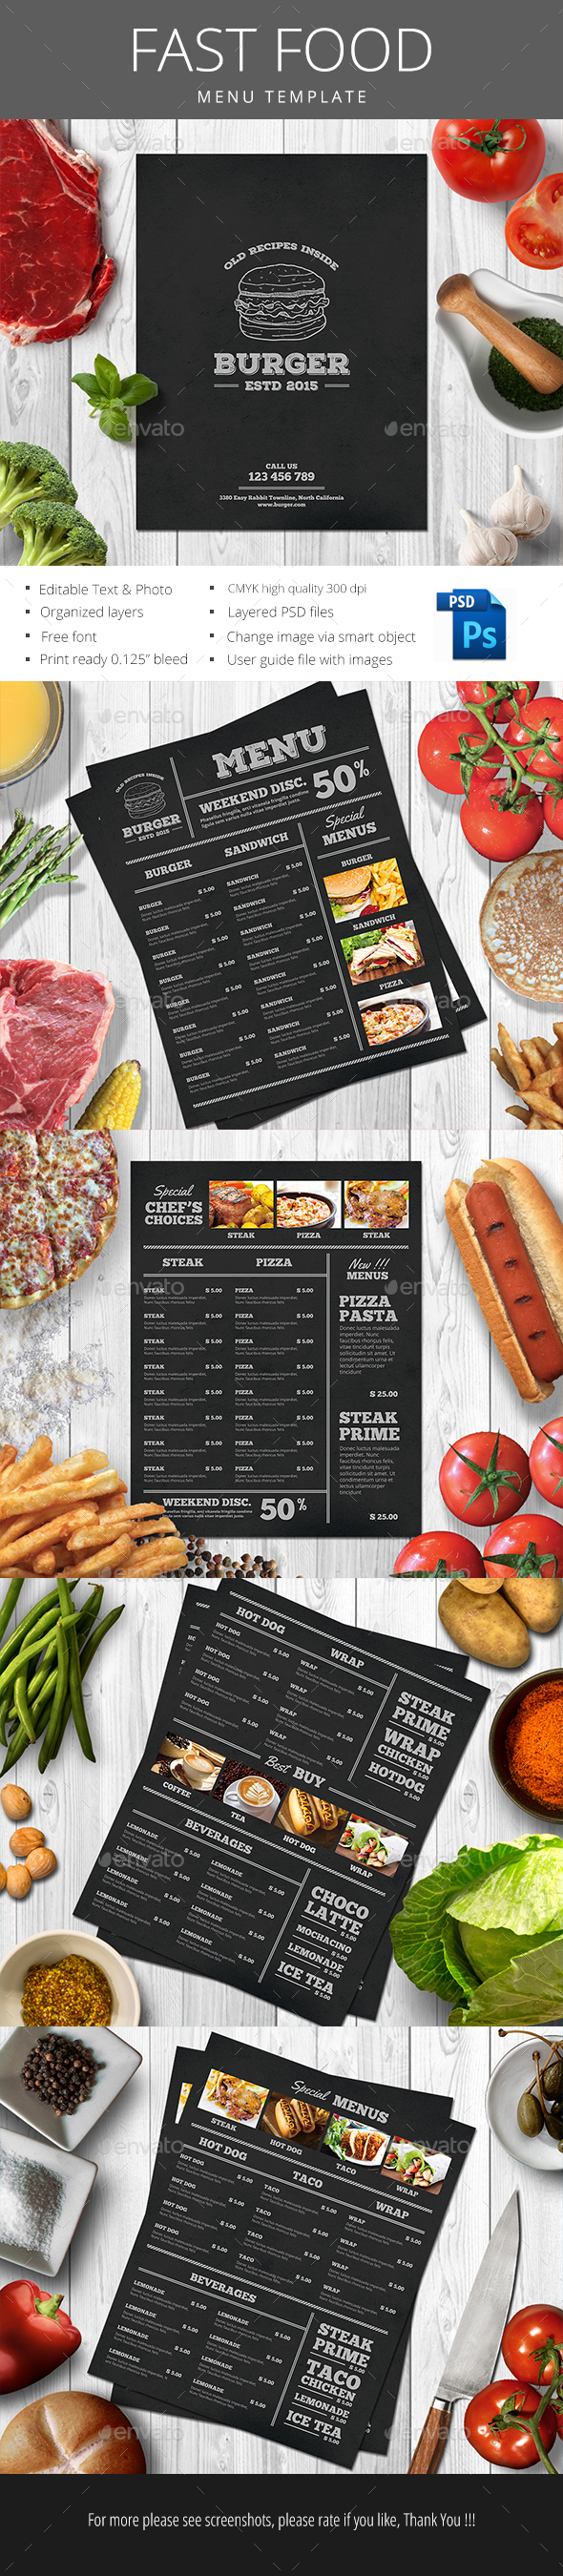 Fast Food Menu - Food Menus Print Templates